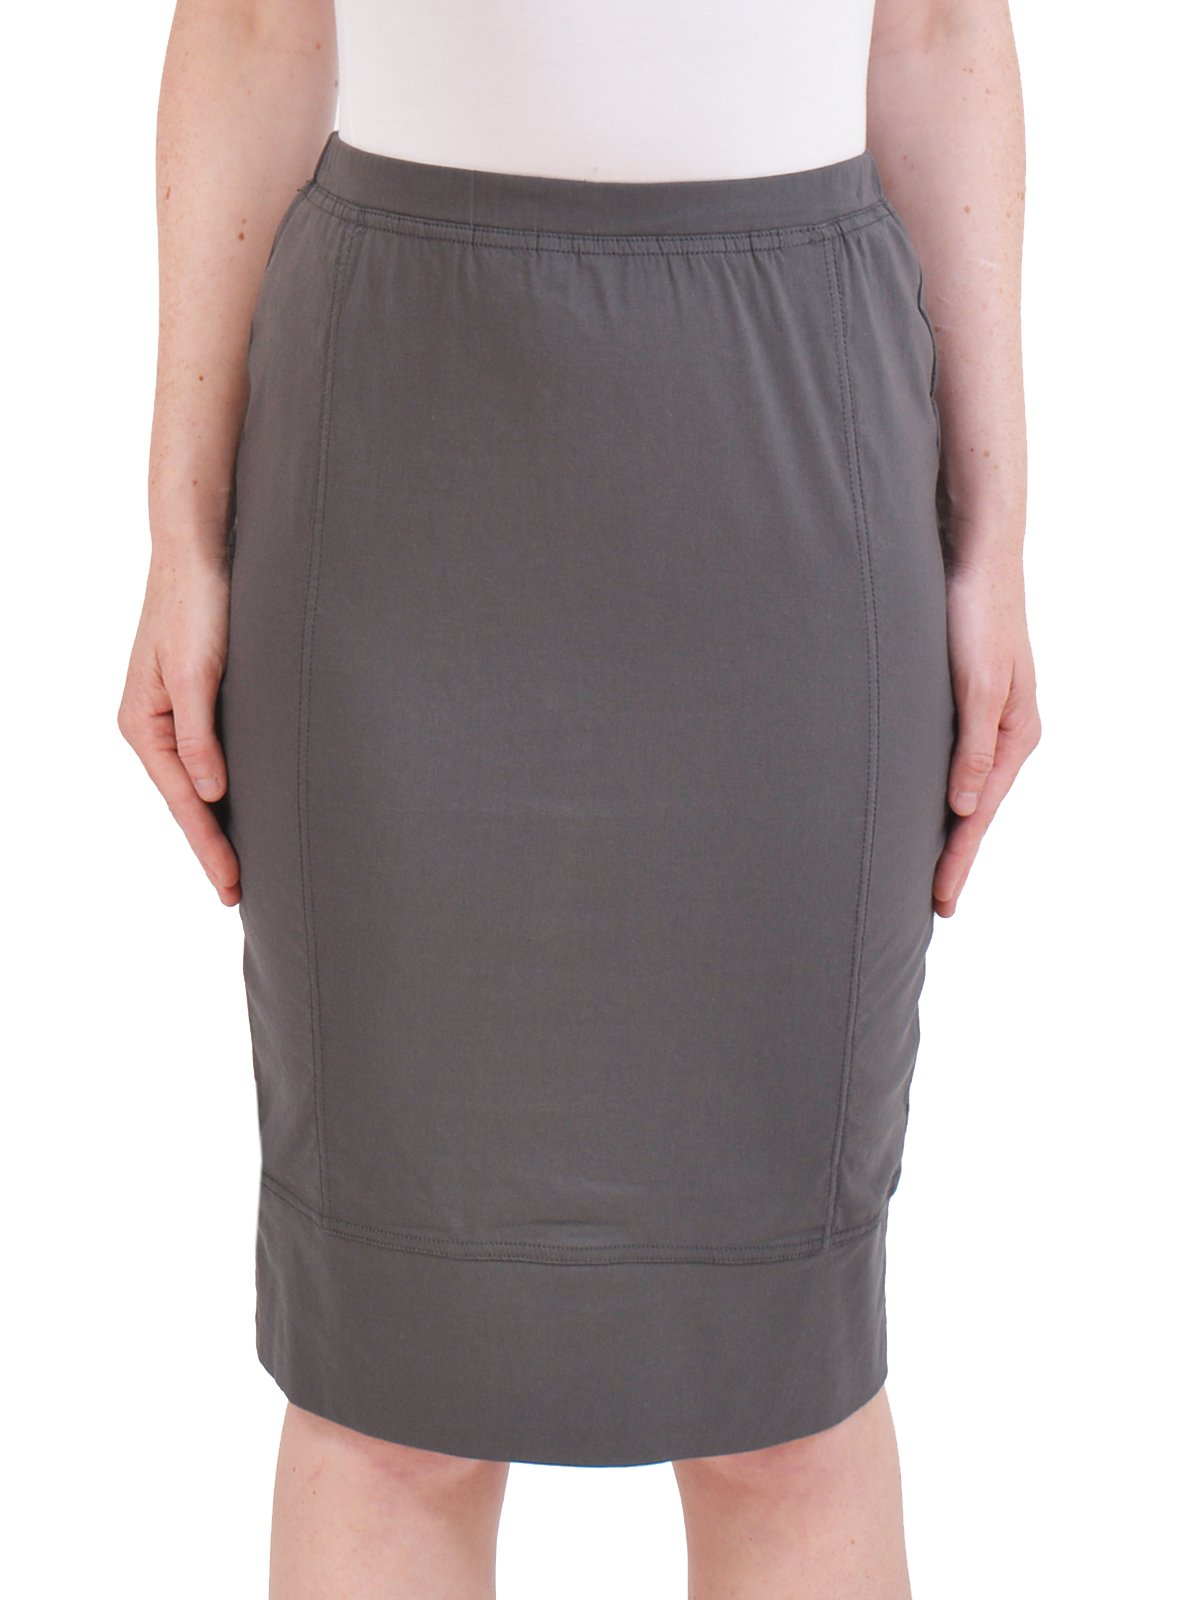 Yeltuor - VERGE - SKIRTS - Verge Acrobat Layer Skirt -  -